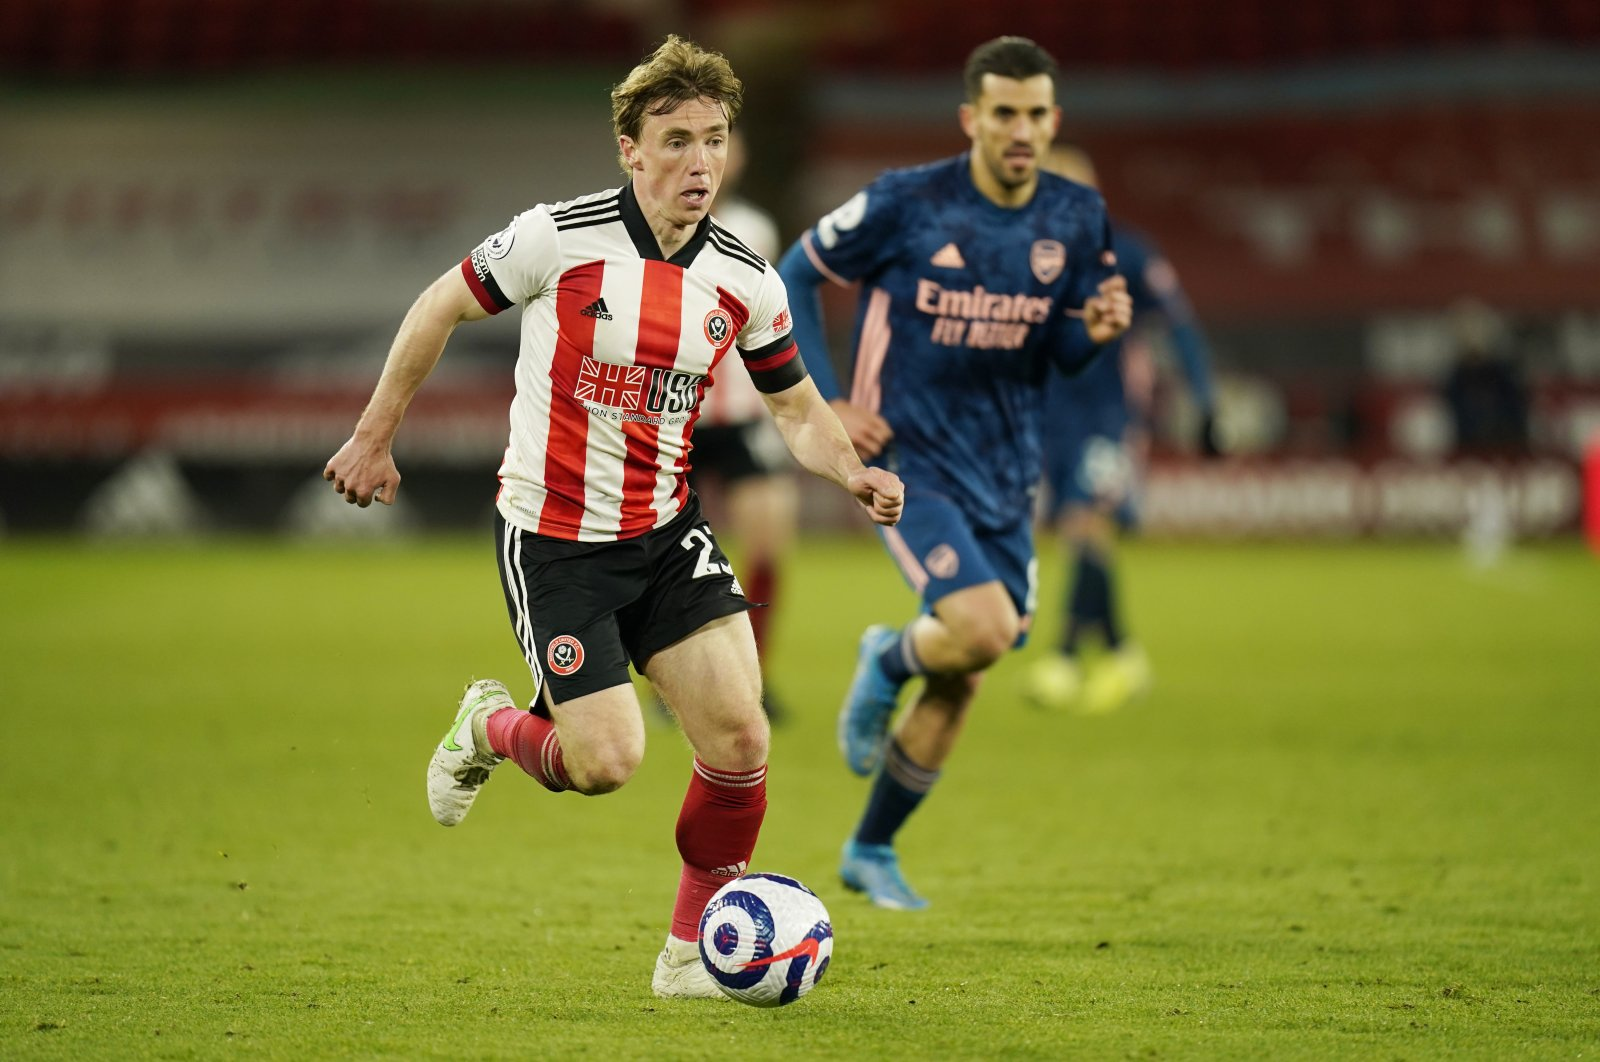 Sheffield United's Ben Osborn, left, controls the ball during the English Premier League soccer match between Sheffield United and Arsenal at the Bramall Lane stadium in Sheffield, England, Sunday, April 11, 2021. (AP Photo)